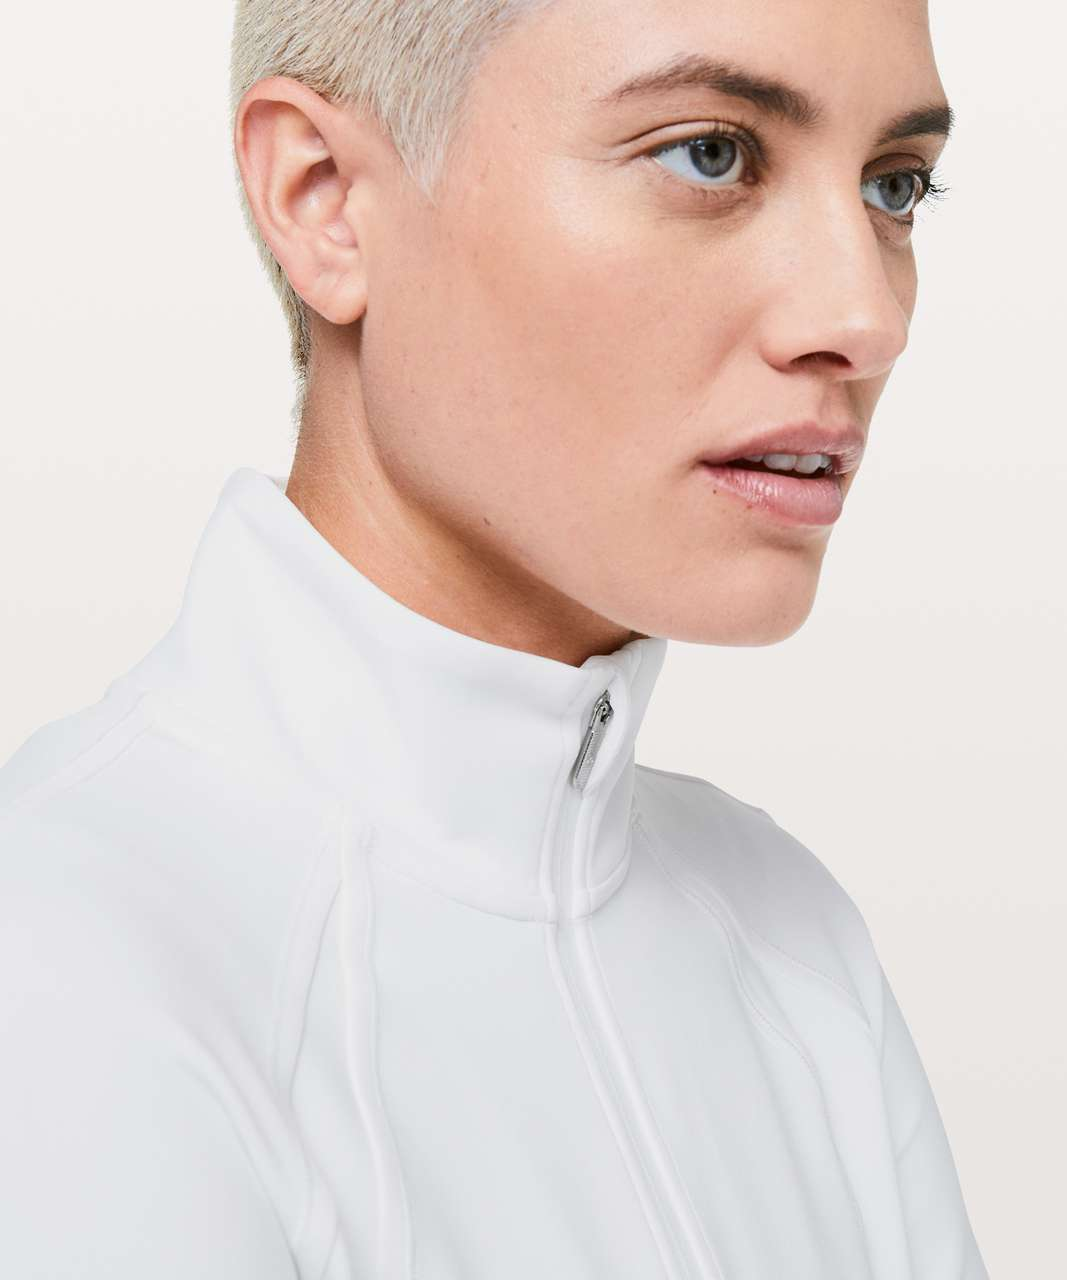 Lululemon In Profile Jacket - White